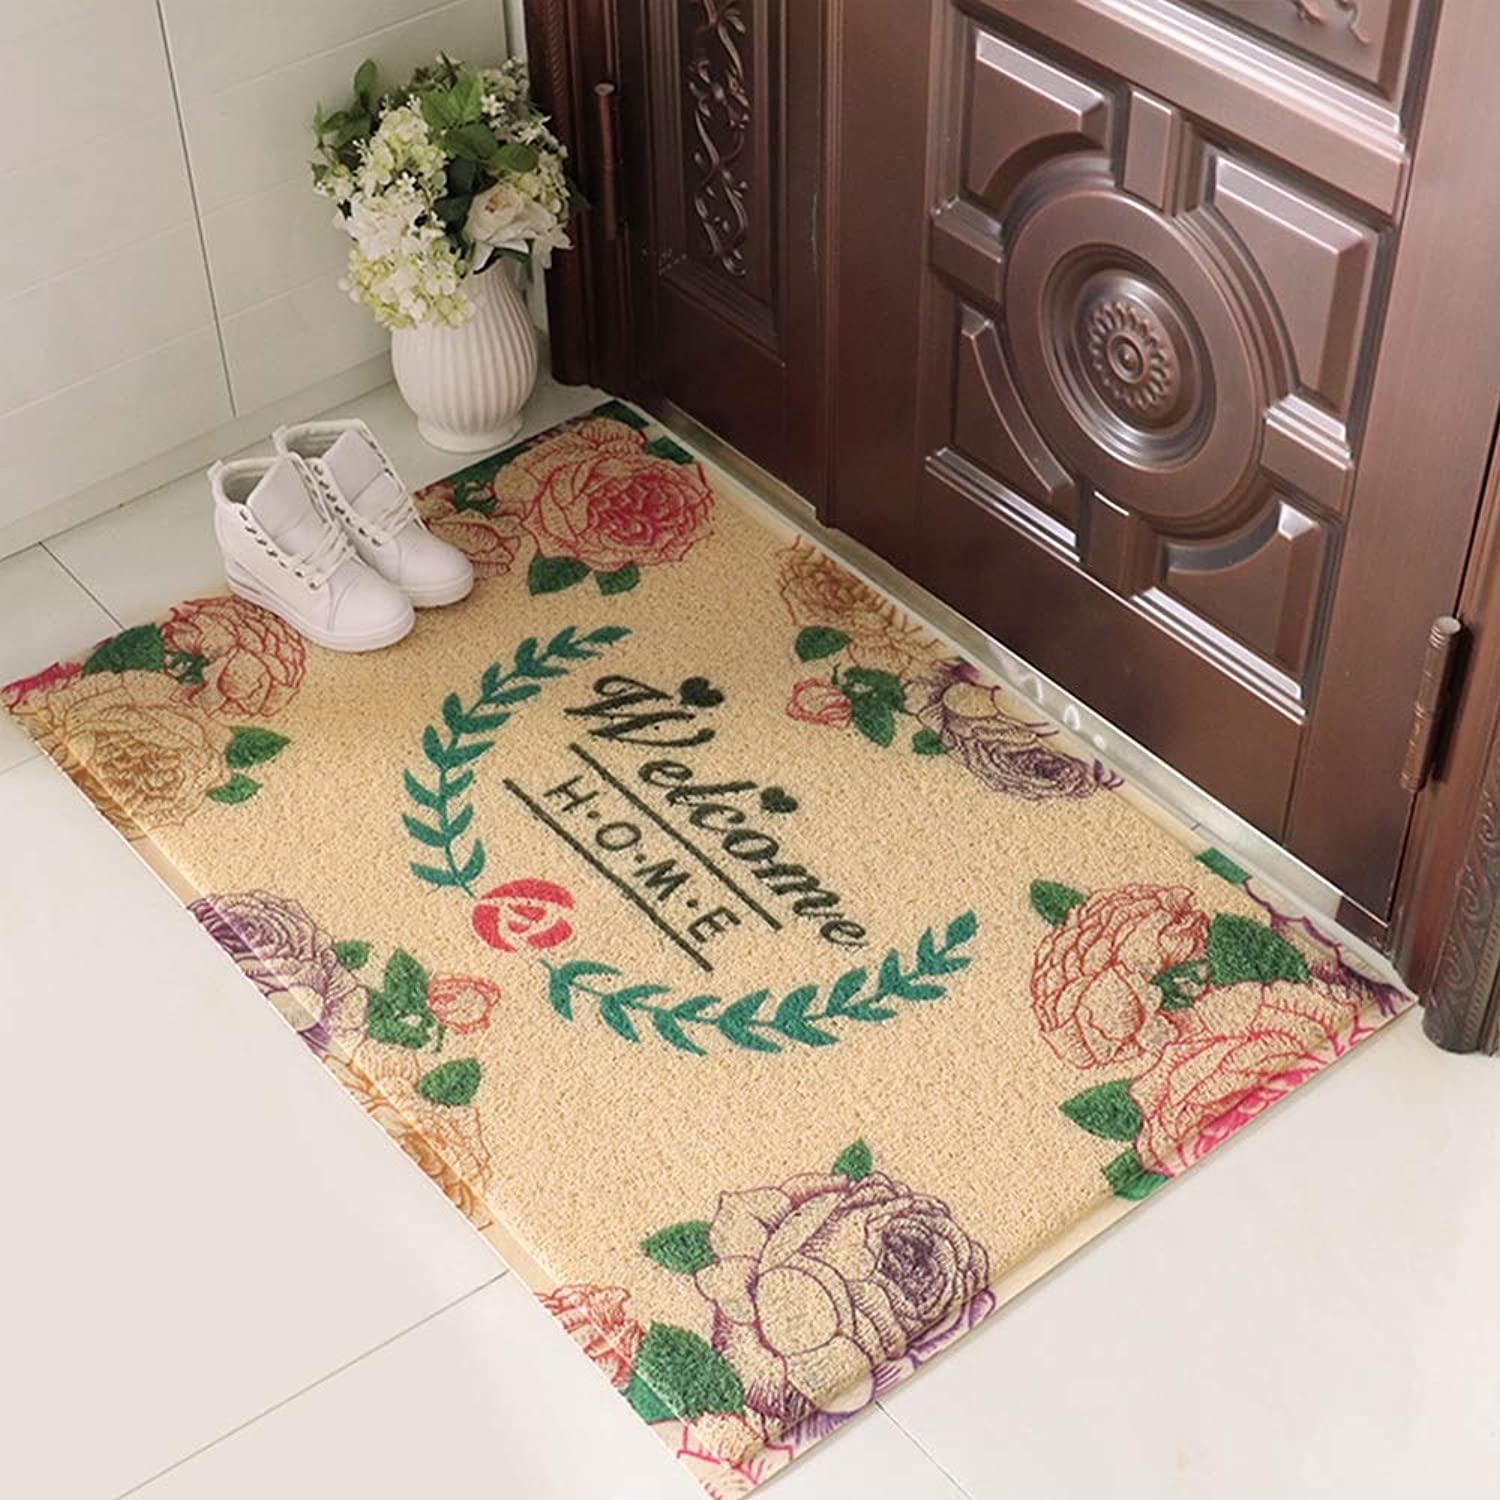 DDSS Door mat Floor mat - Blended Fabric TPR Anti-Skid Rubber Sole, Sweeping dust, Thickening Anti-Skid, European Foyer Porch Door mat mat mat Anti-Slip mat - 5 Styles Optional  -  (color   Yaou)